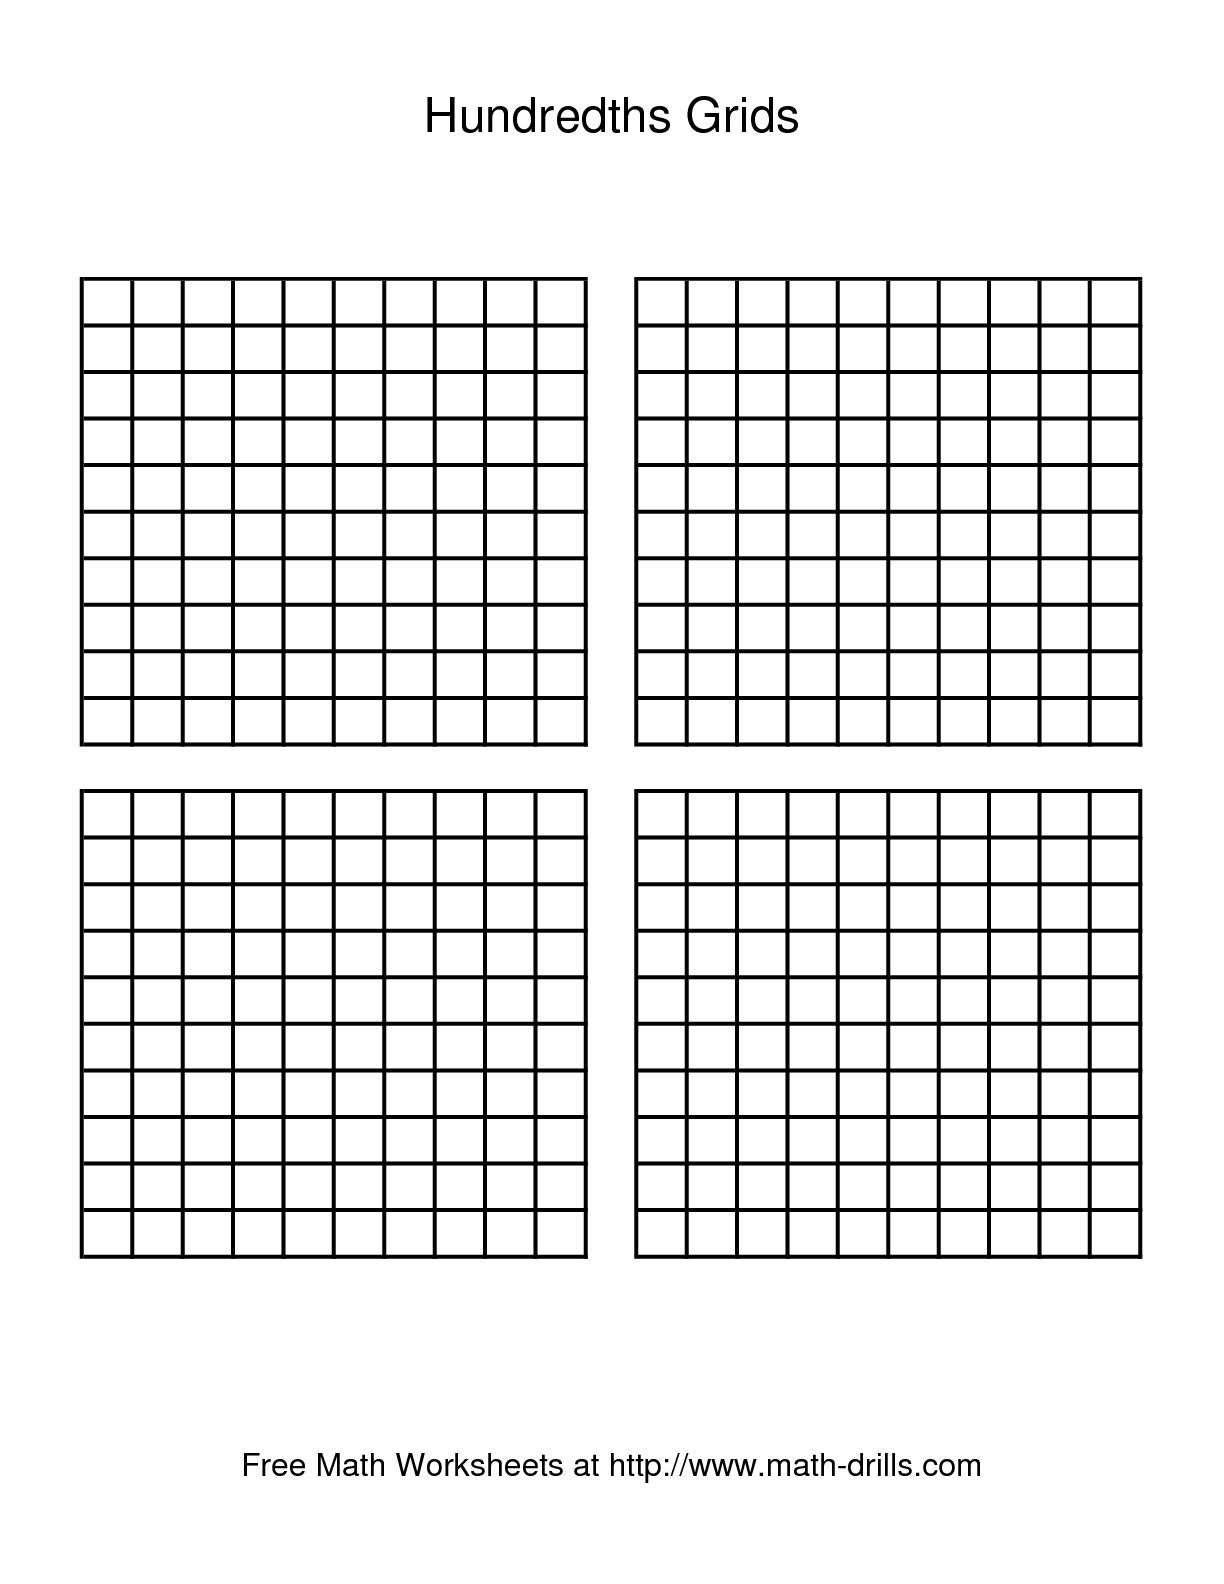 Obsessed image with hundredths grid printable